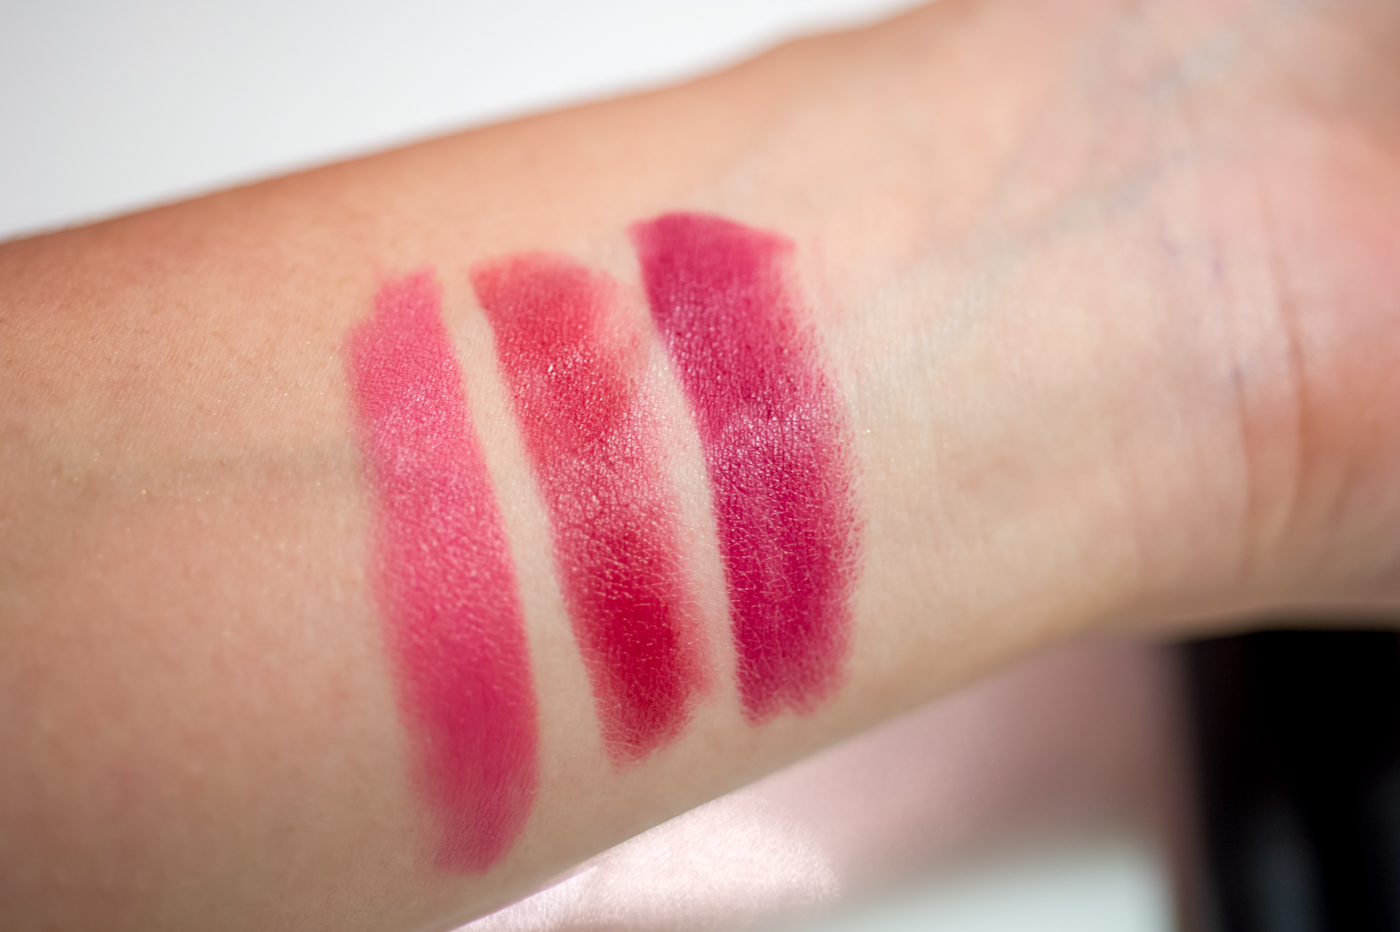 Elf Eyes Lips Face Matte Lippecils swatches & review